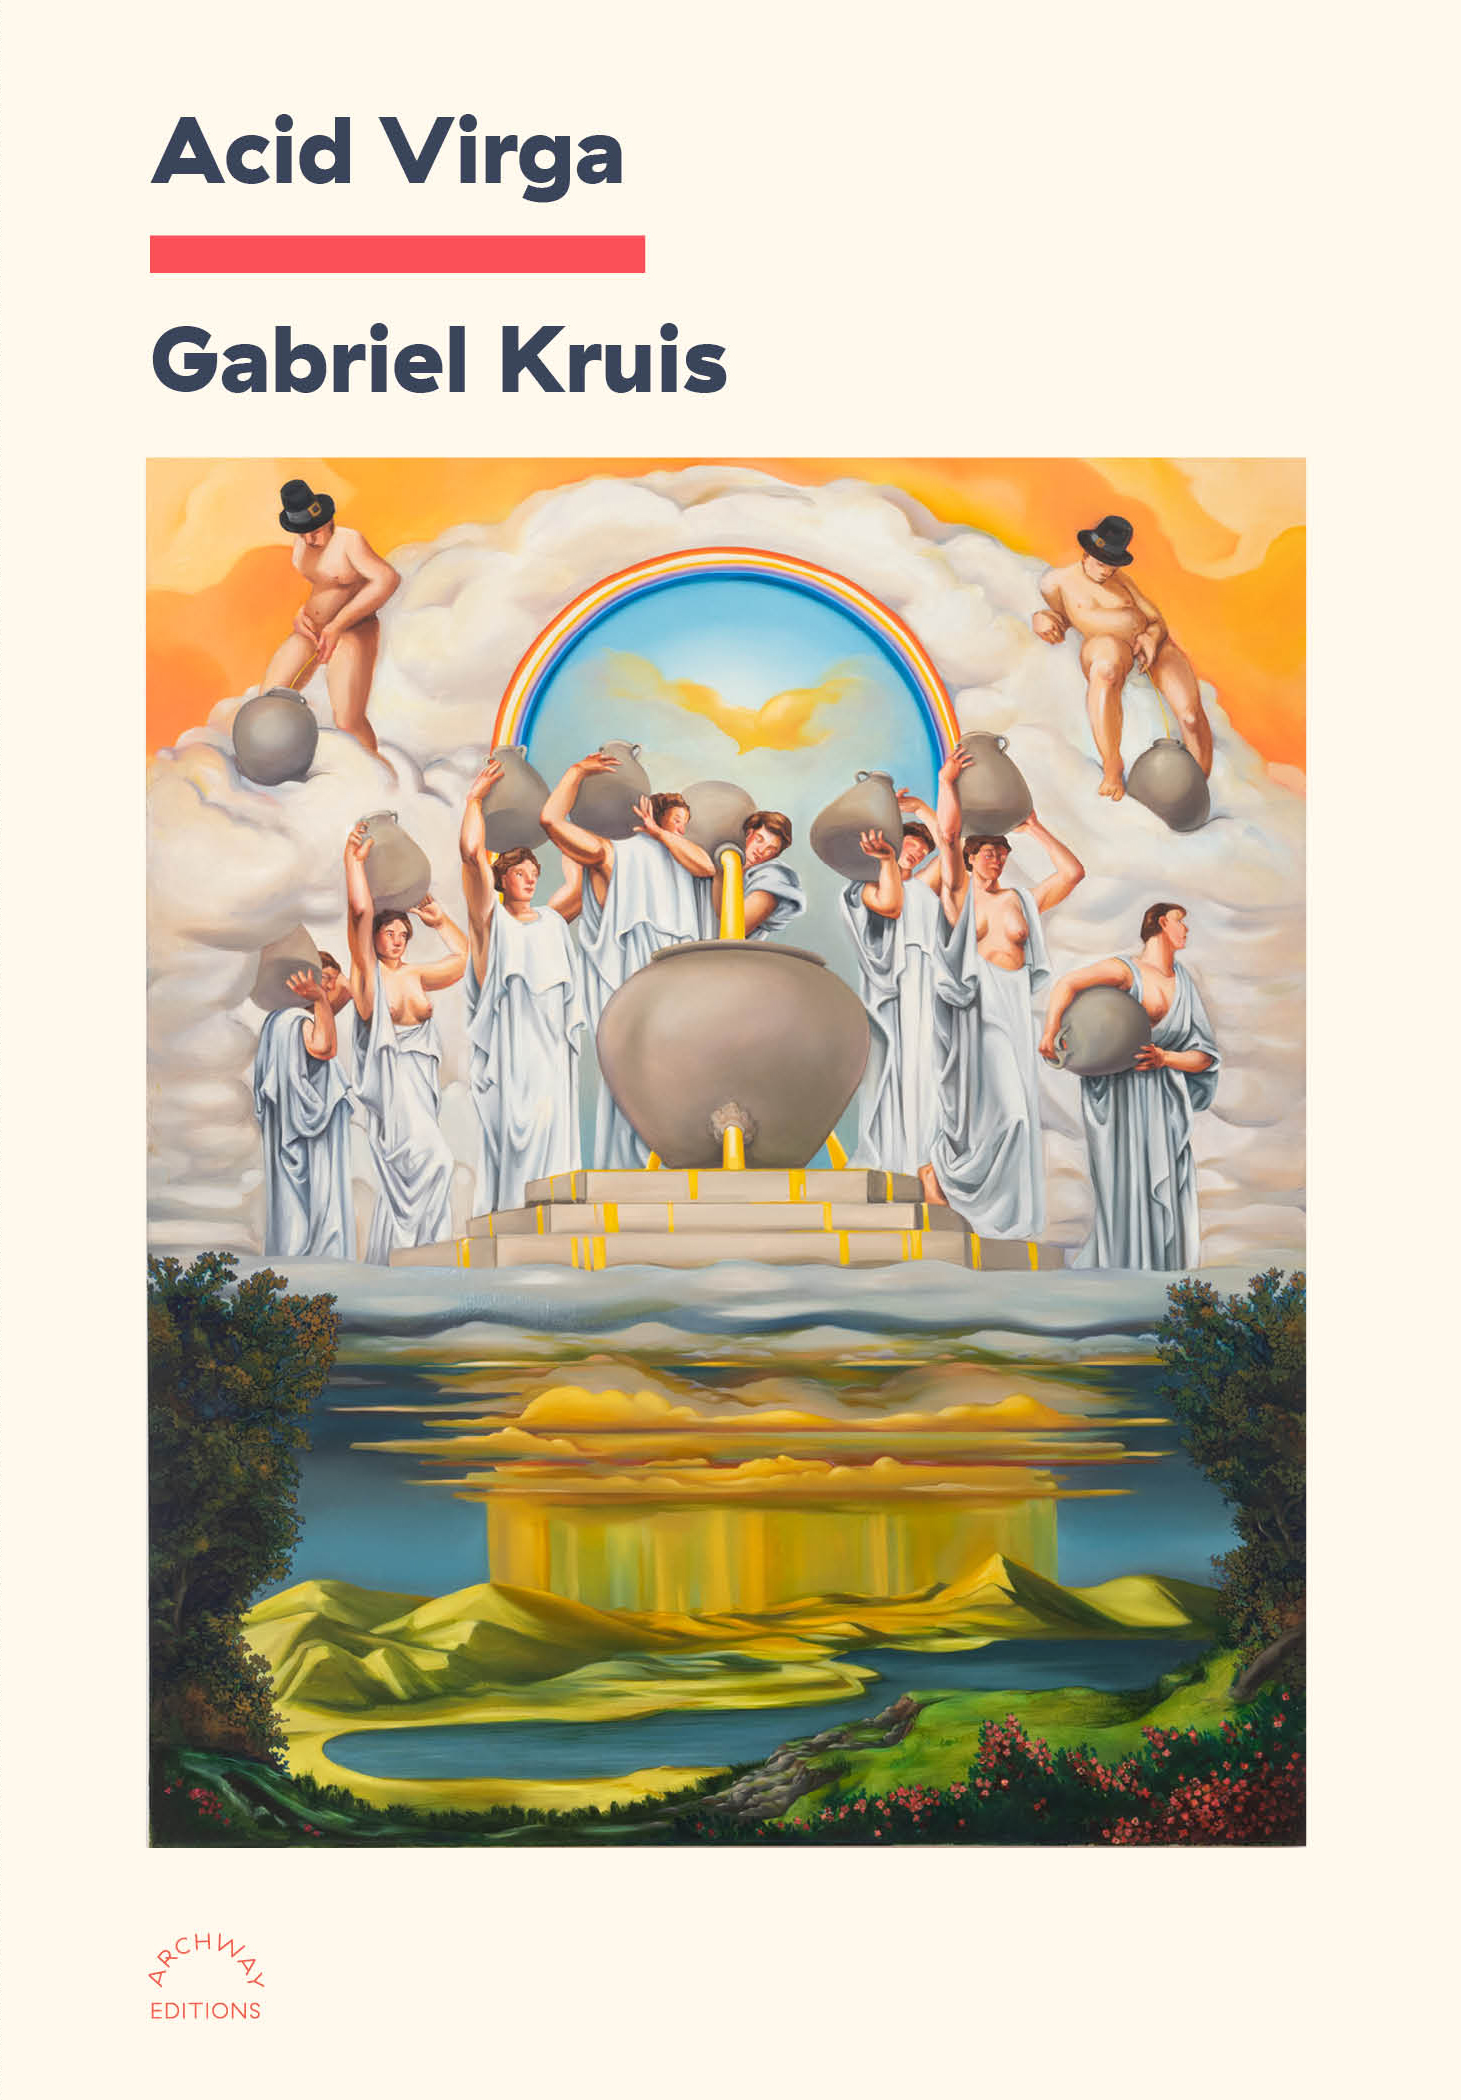 ARCHWAY EDITIONS presents the virtual book launch for ACID VIRGA by Gabriel Kruis live at the Park Church Co-op with Dorothea Lasky, Adjua Gargi Nzinga Greaves, Benjamin Krusling, MacGregor Card, and Tidal Channel